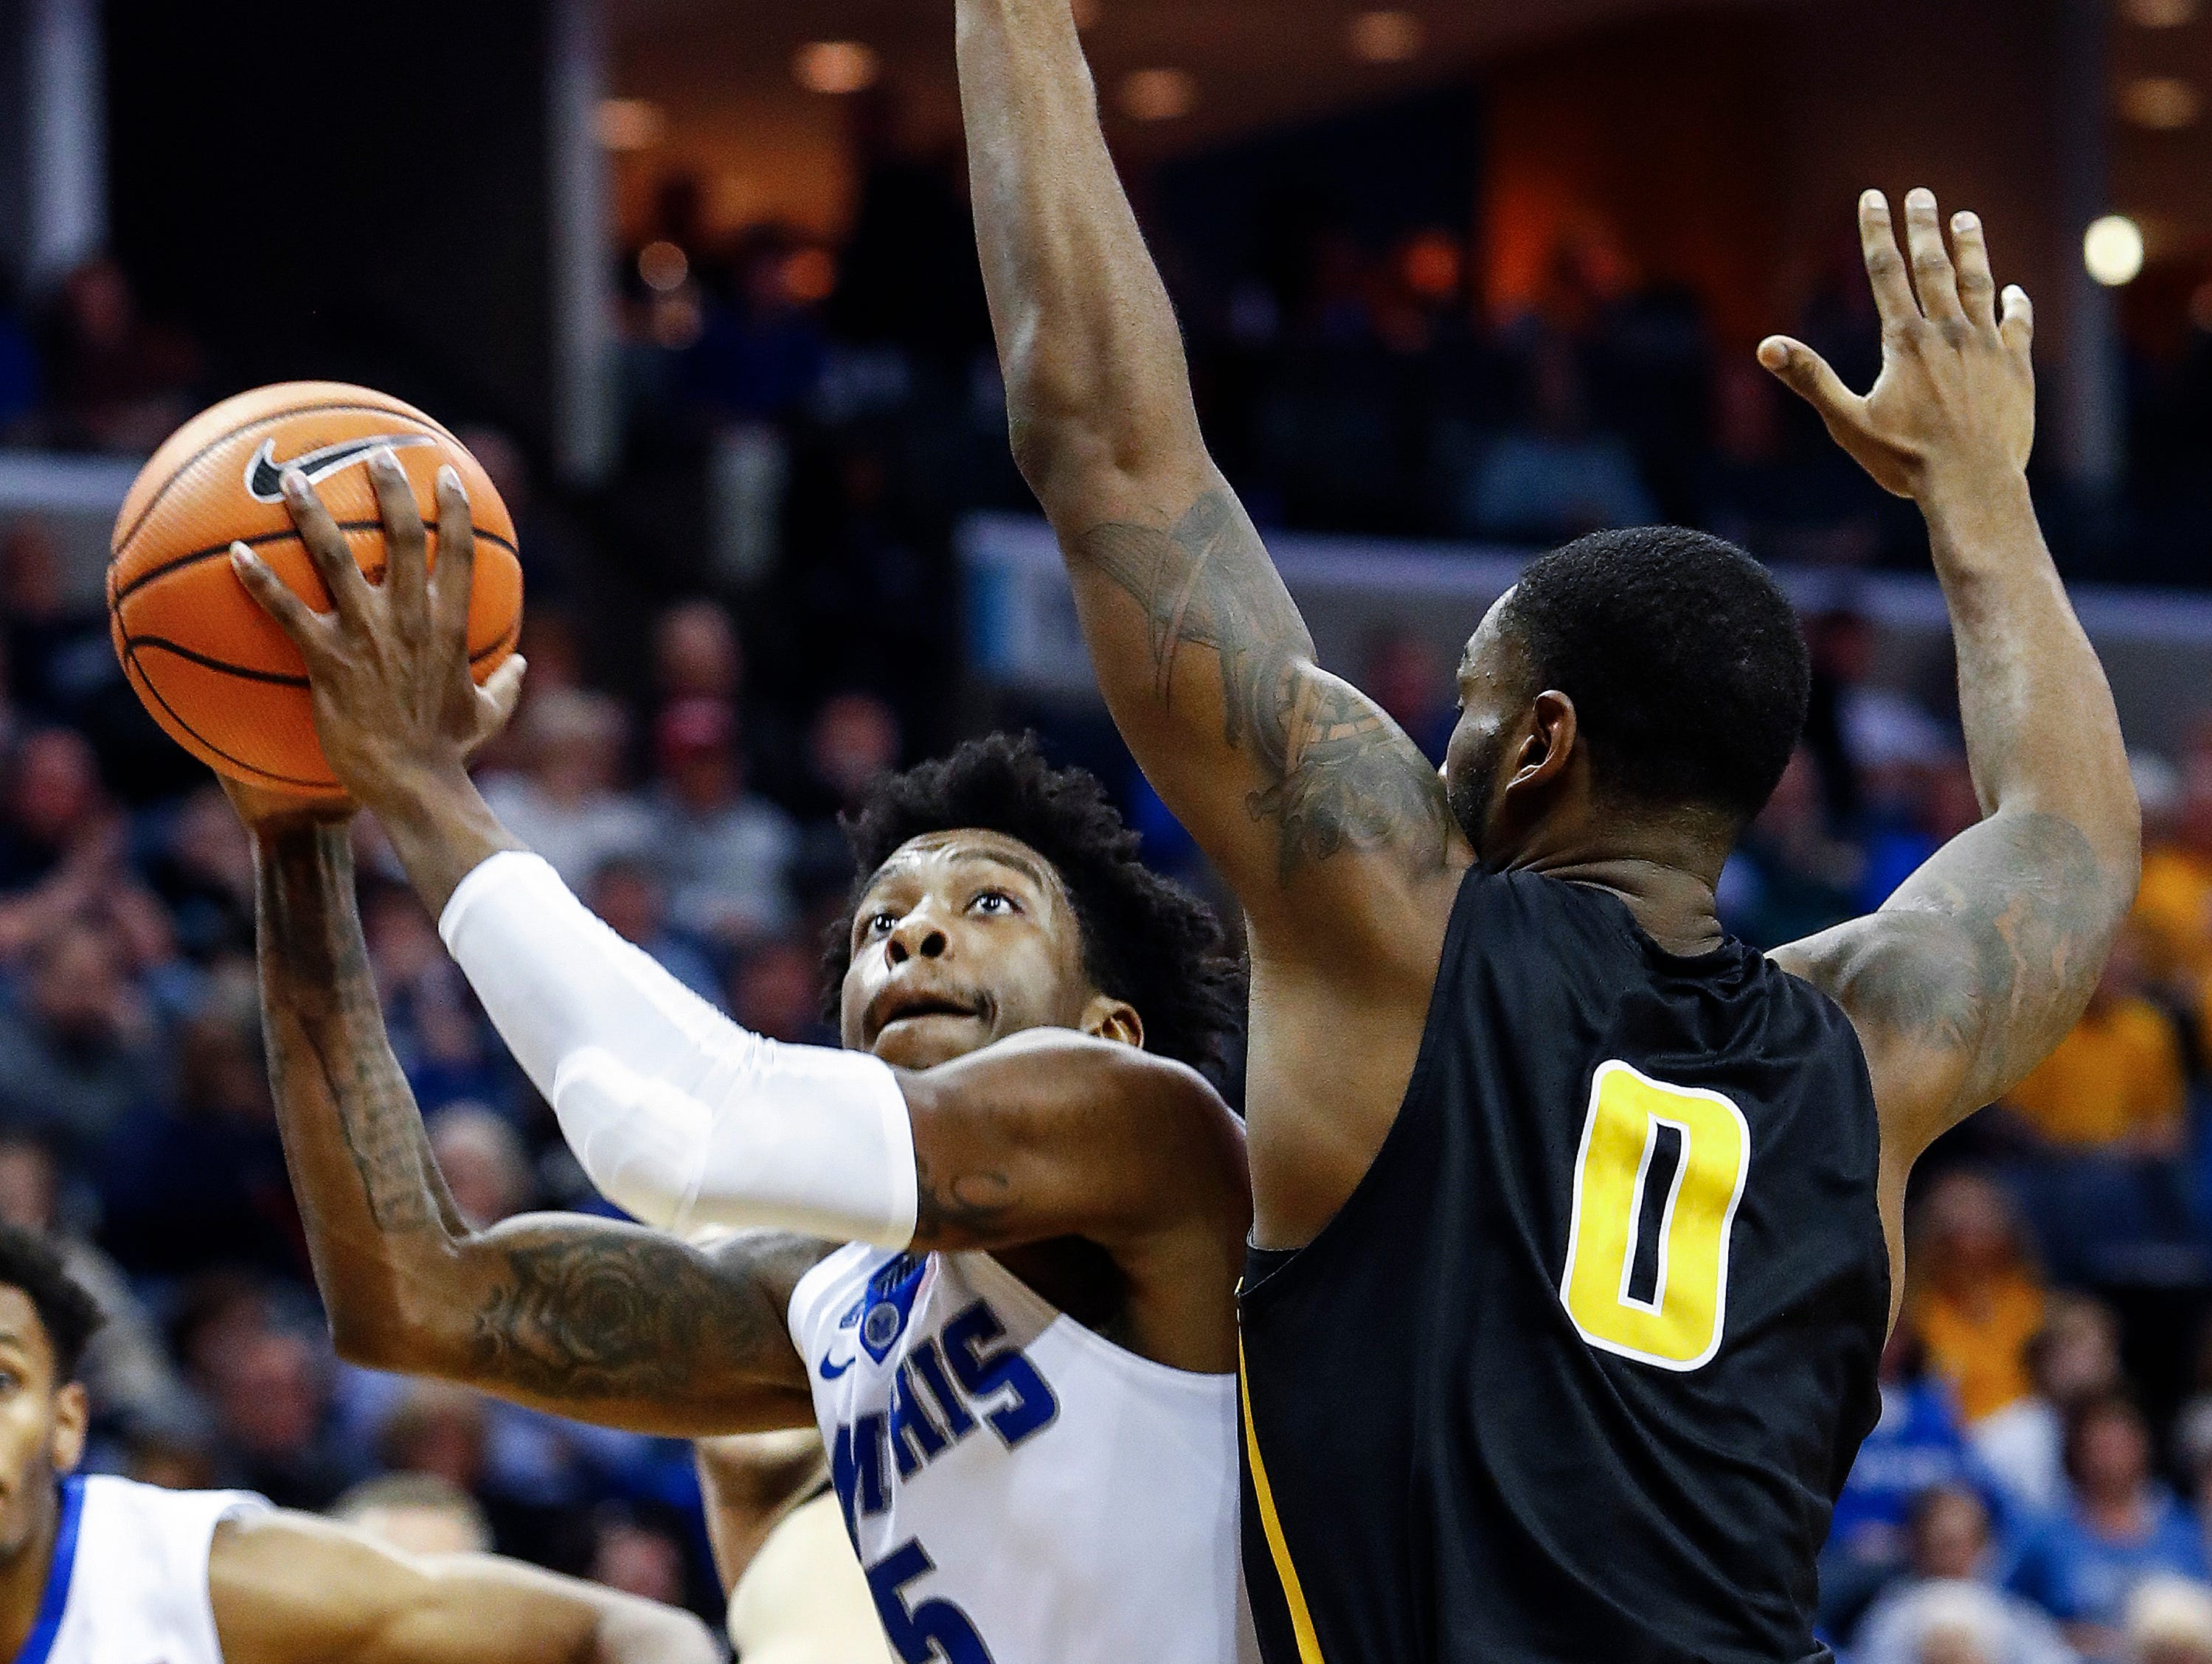 Memphis guard Kareem Brewton Jr. (left) drives for a layup against the Wichita State defense during second half action at the FedExForum in Memphis Tenn., Tuesday, February 6, 2018.